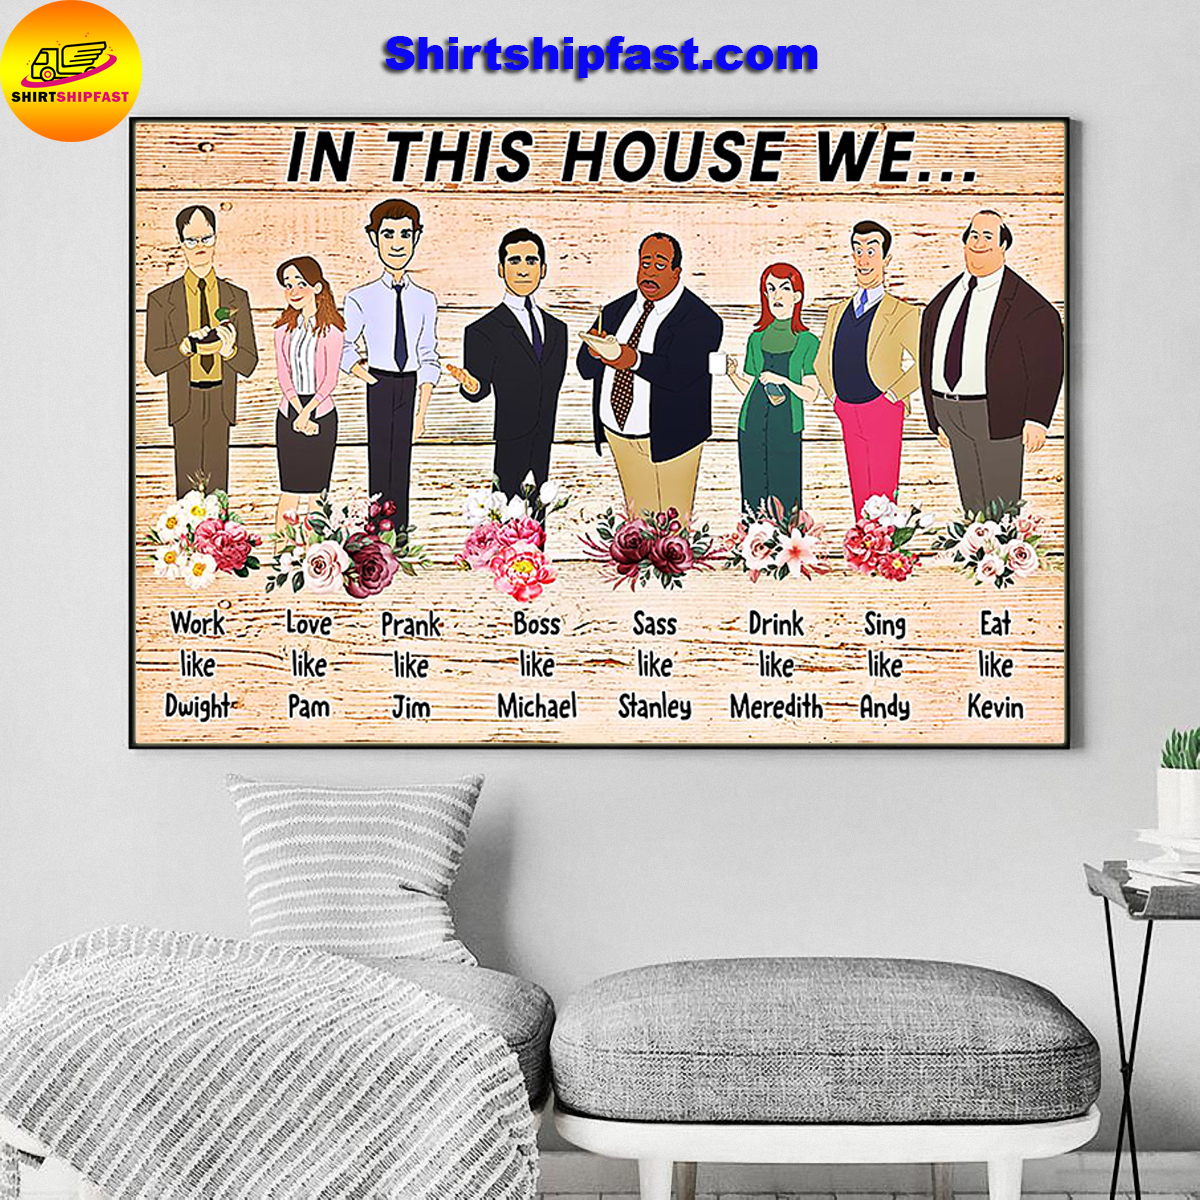 The office in this house we work like Dwight poster - Picture 2